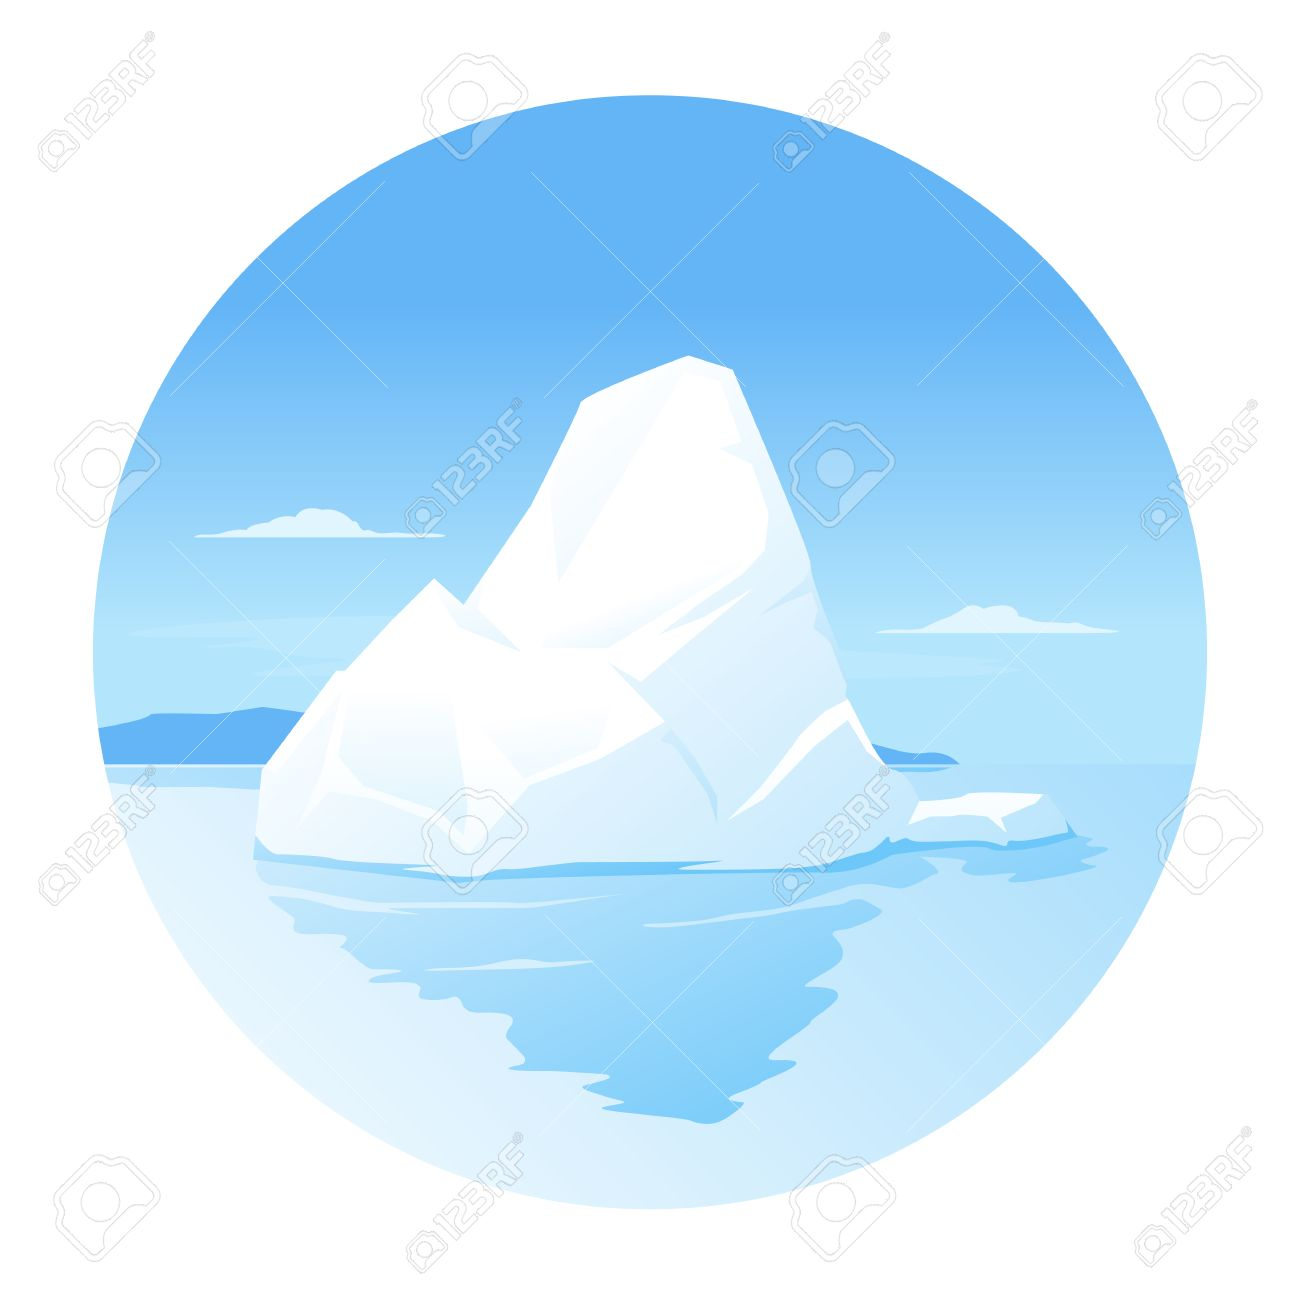 one iceberg in the sea tip of the iceberg isolated royalty free rh 123rf com iceberg clipart black and white iceberg clipart black and white